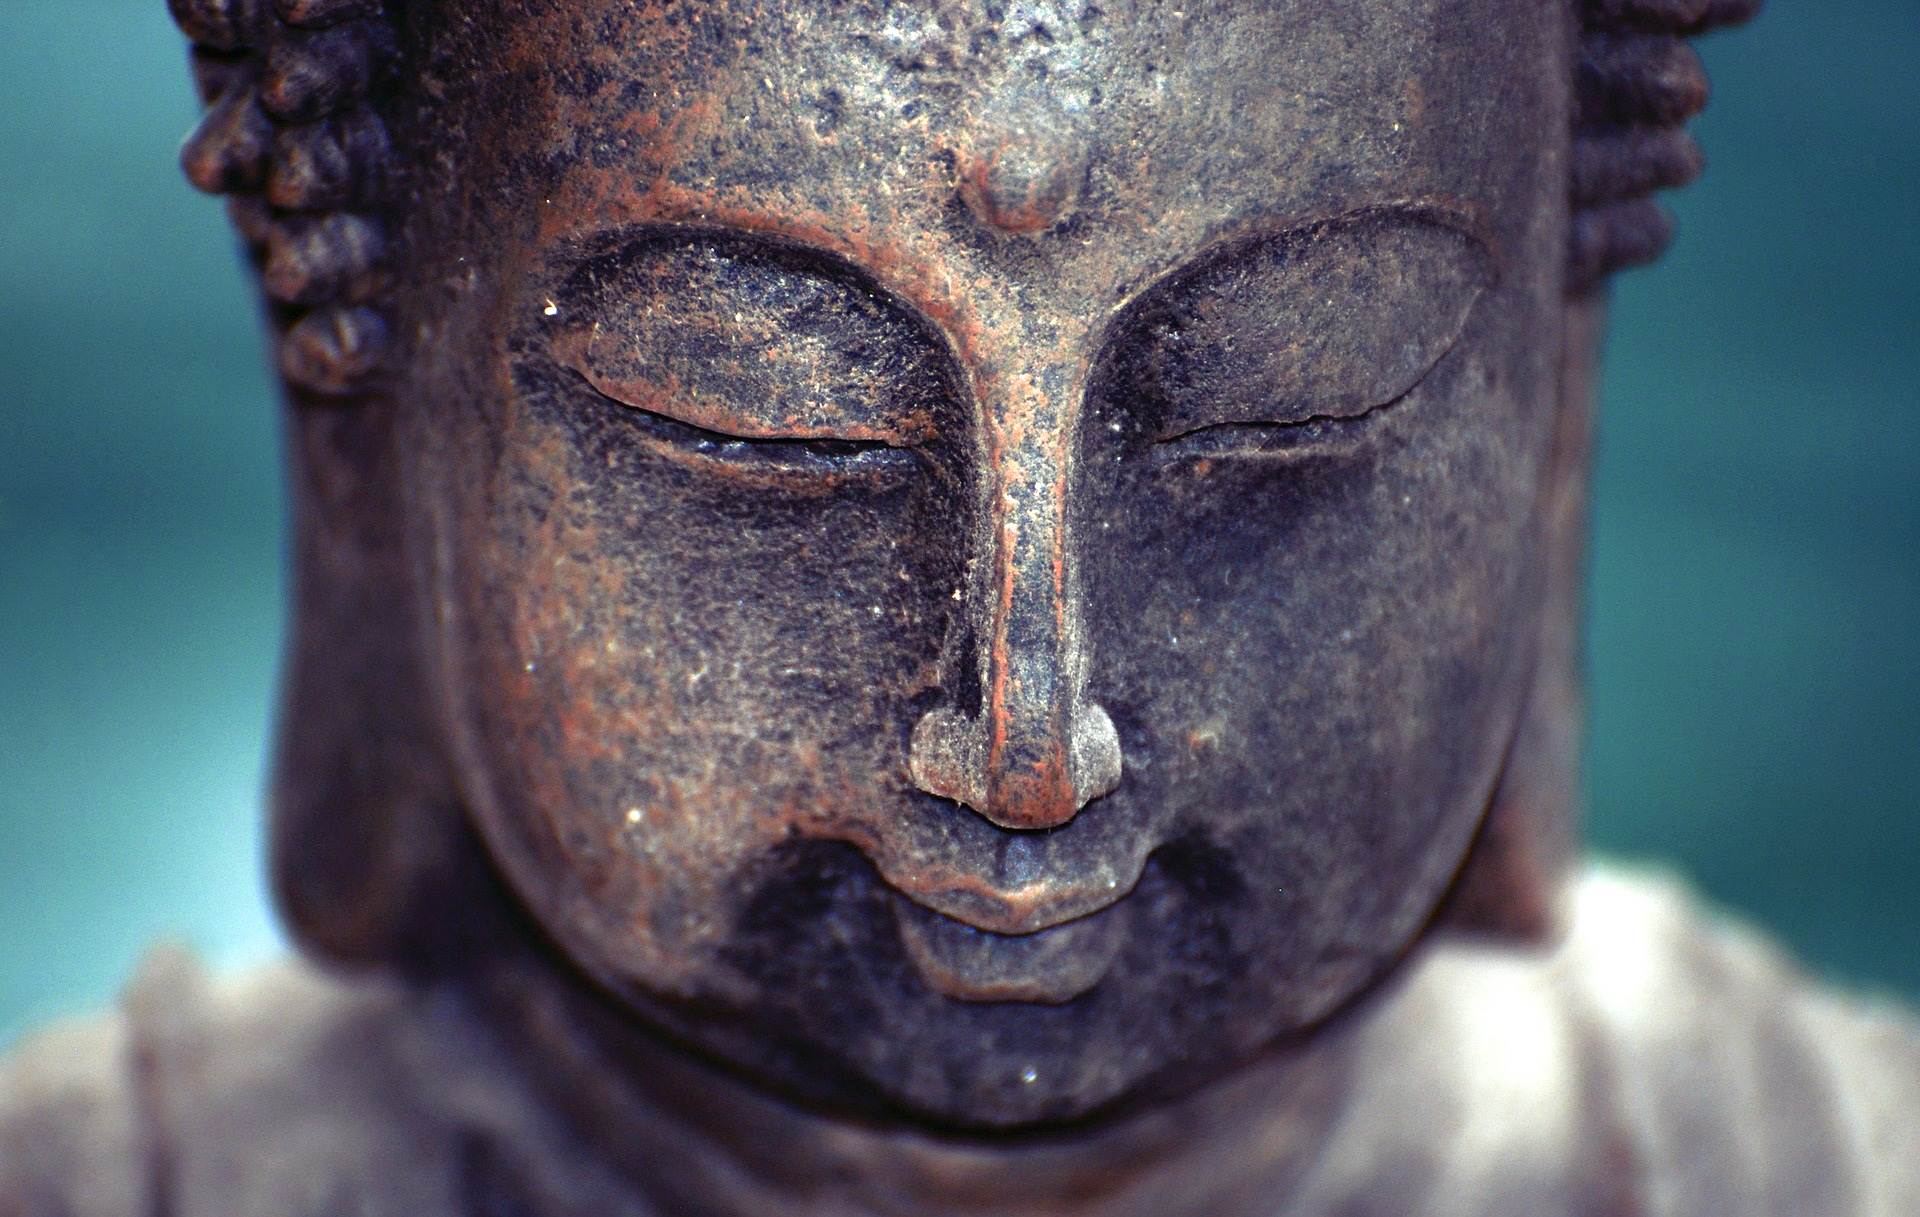 Meditation in the Buddha's Words (26th Oct)